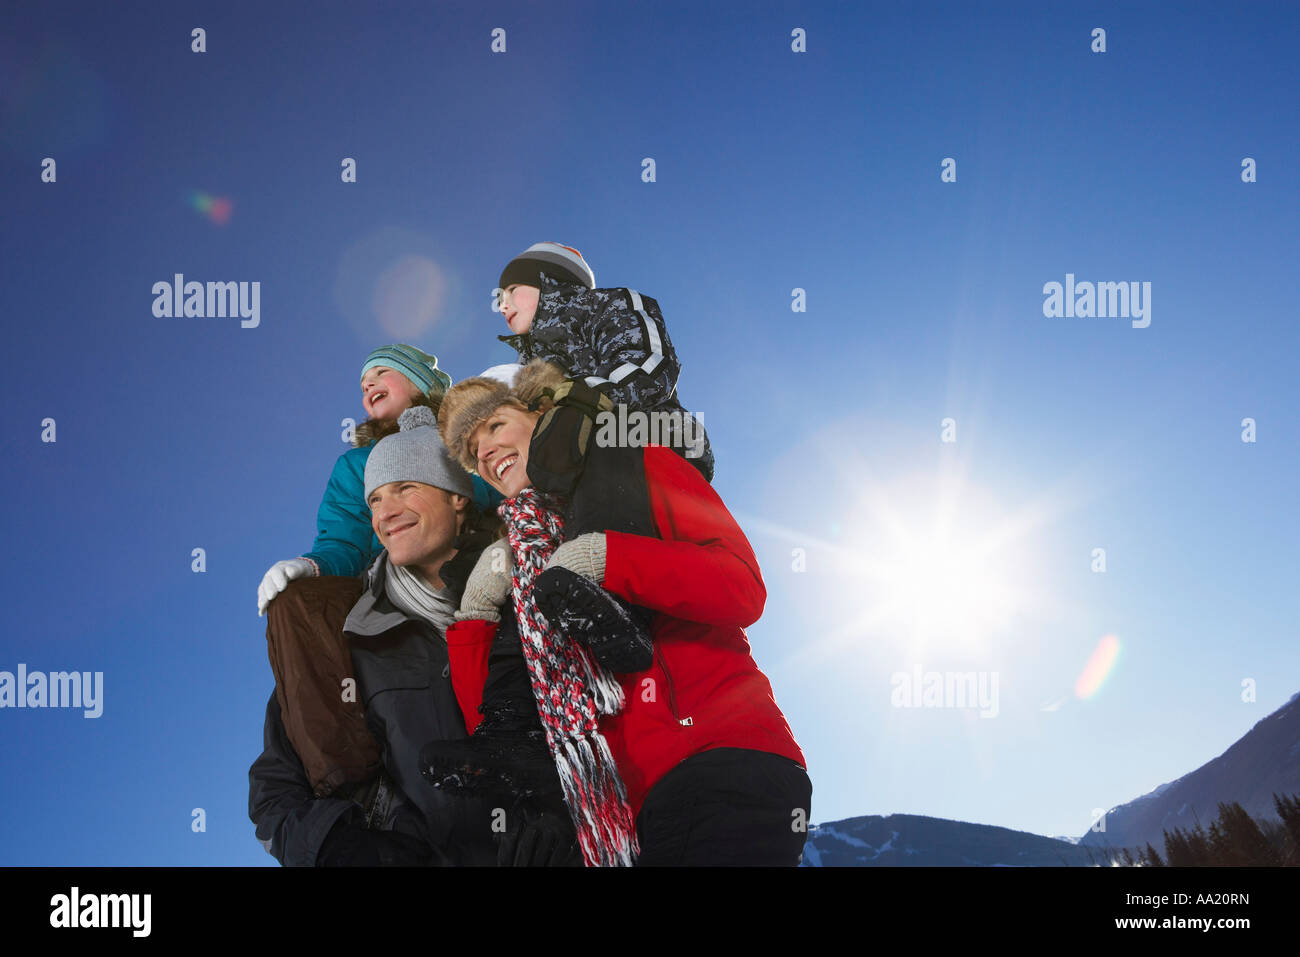 Parents Giving Children Piggyback Rides Stock Photo